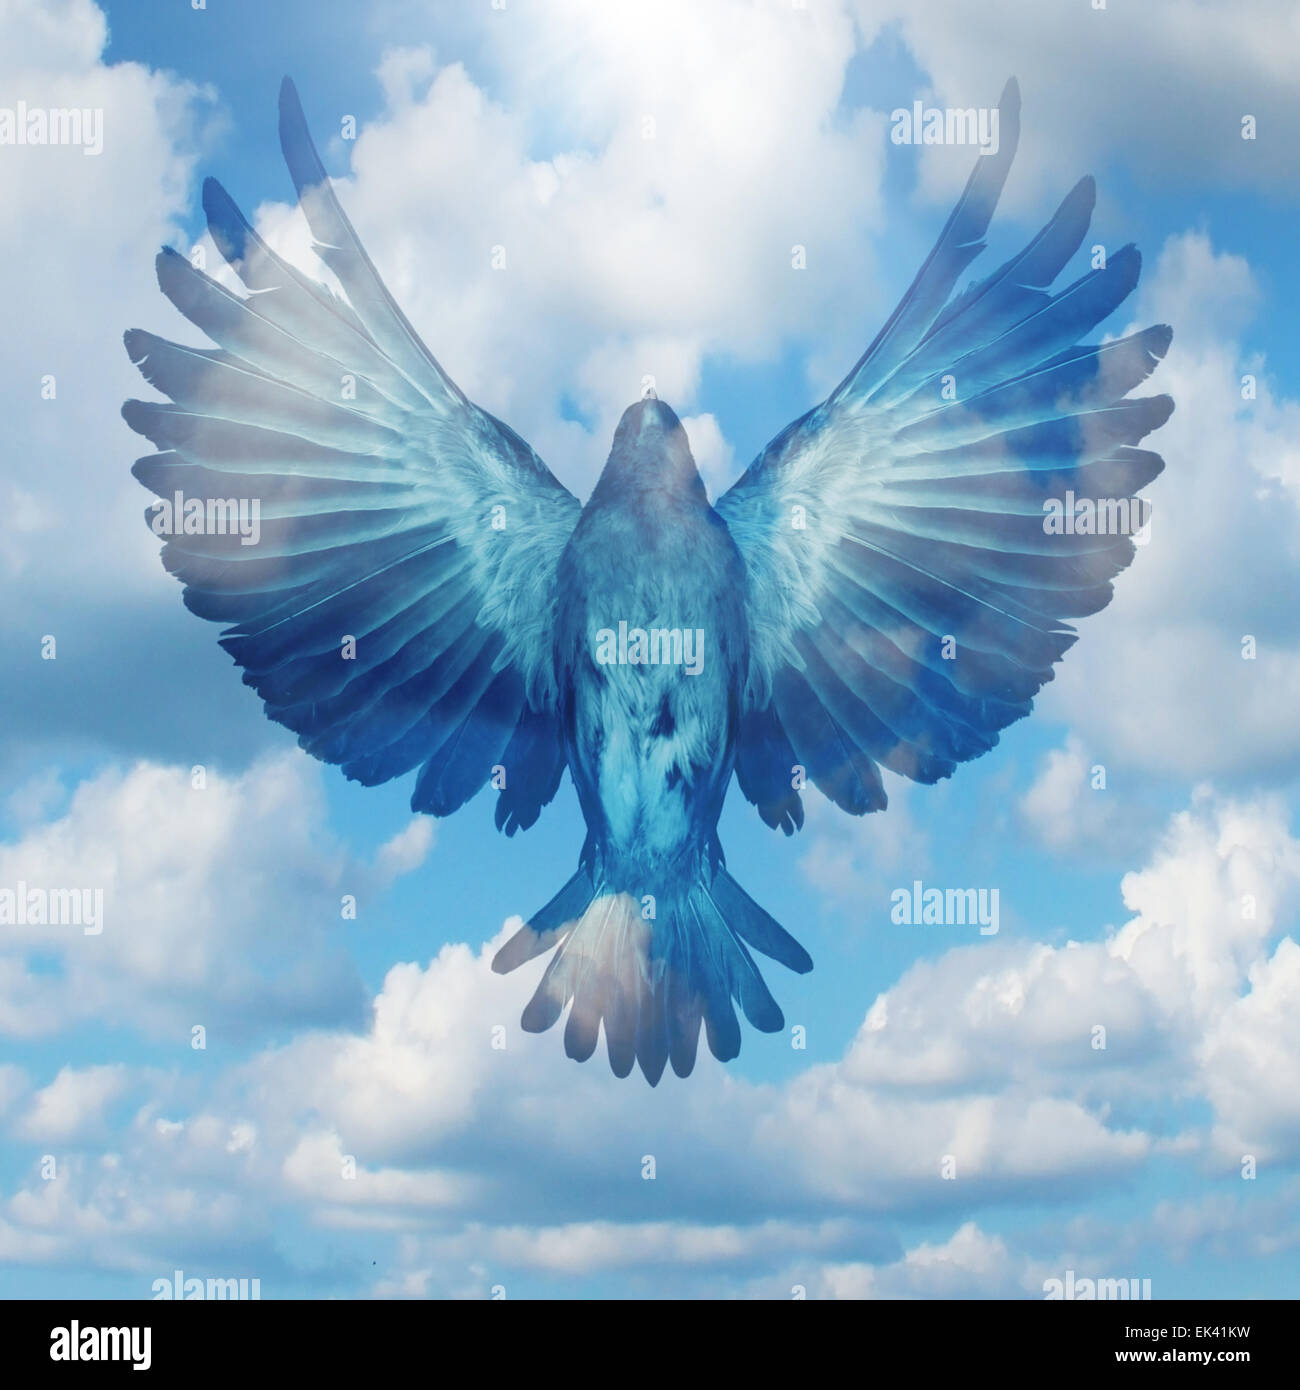 Spread your wings success concept as a flying bird with open extended feathers on a blue sky as a positive achievement - Stock Image